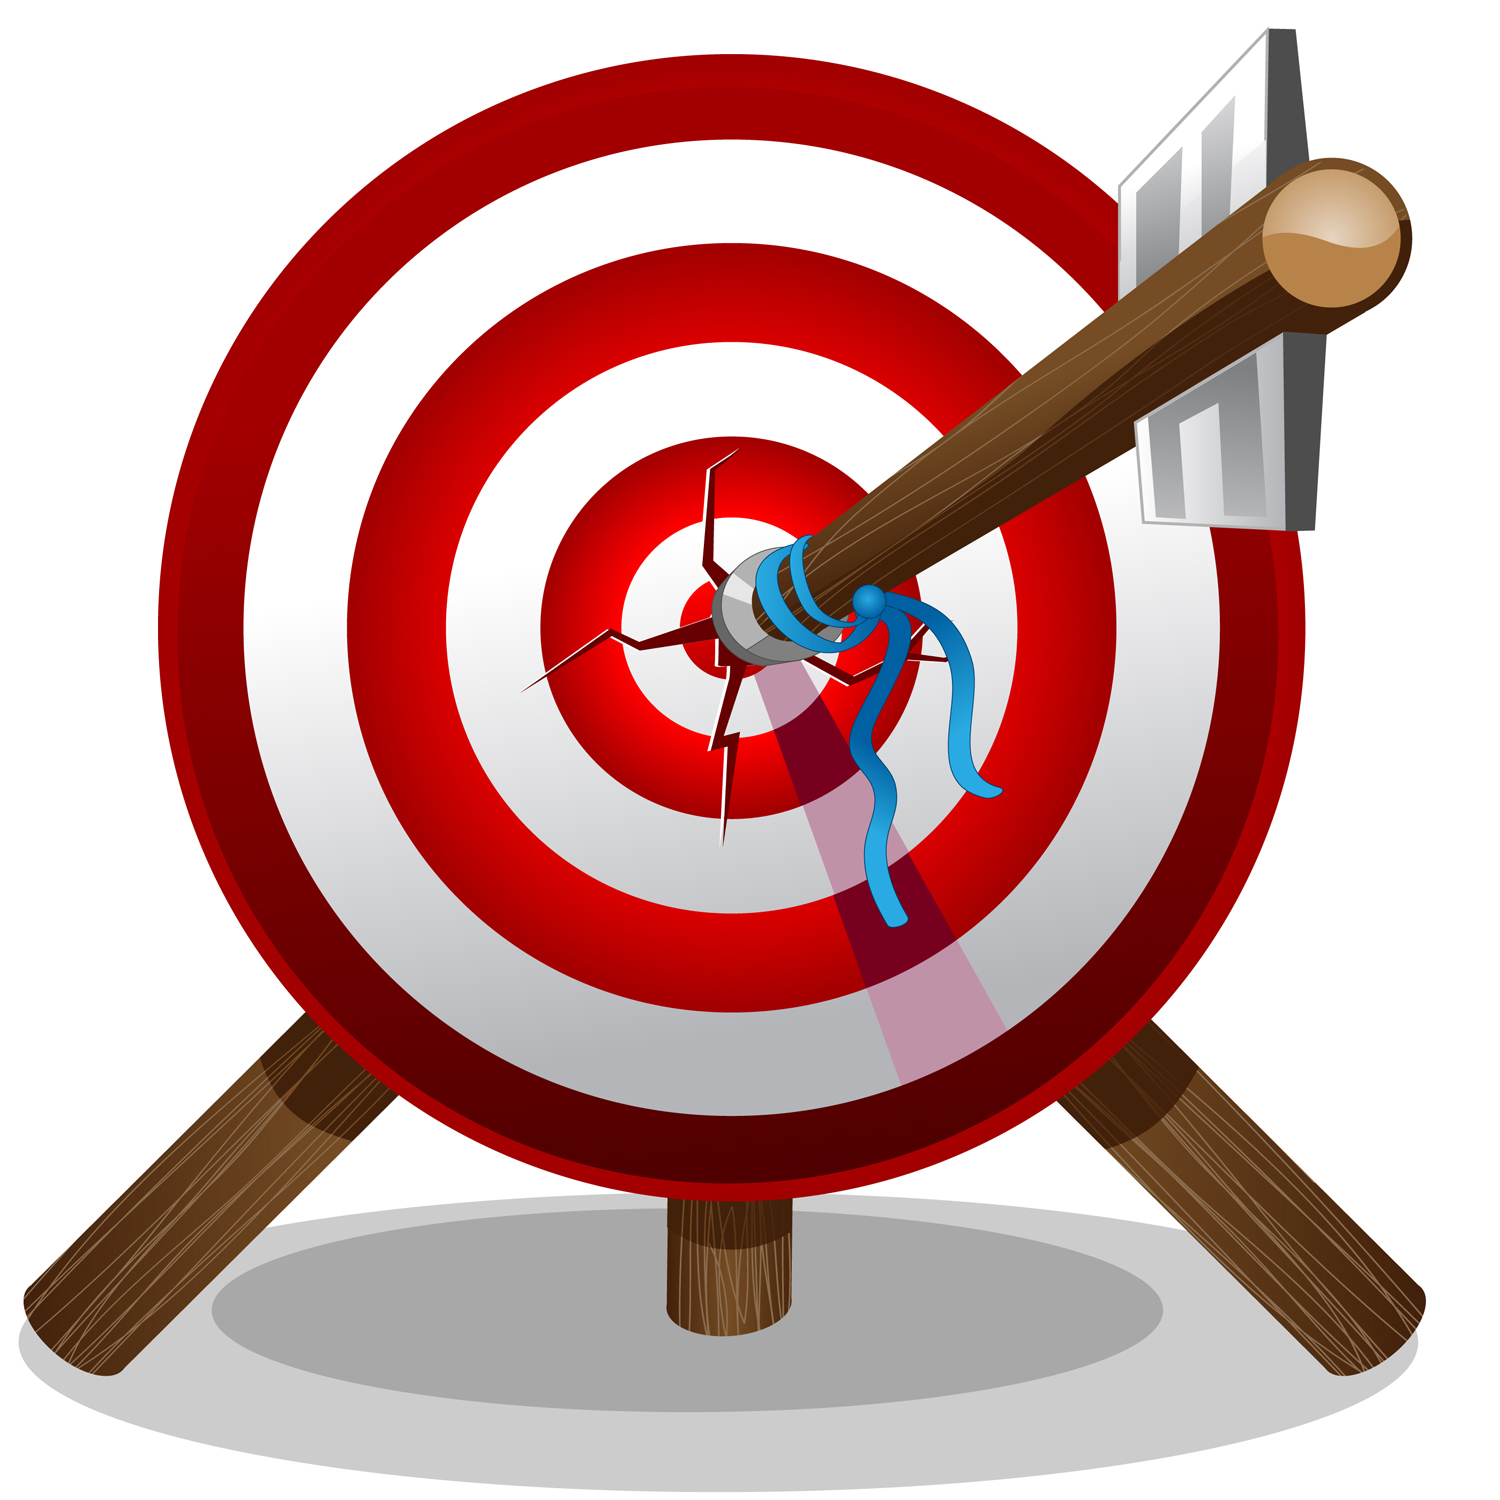 Arrow hitting target clipart jpg free download Arrow hitting target clipart - ClipartFest jpg free download